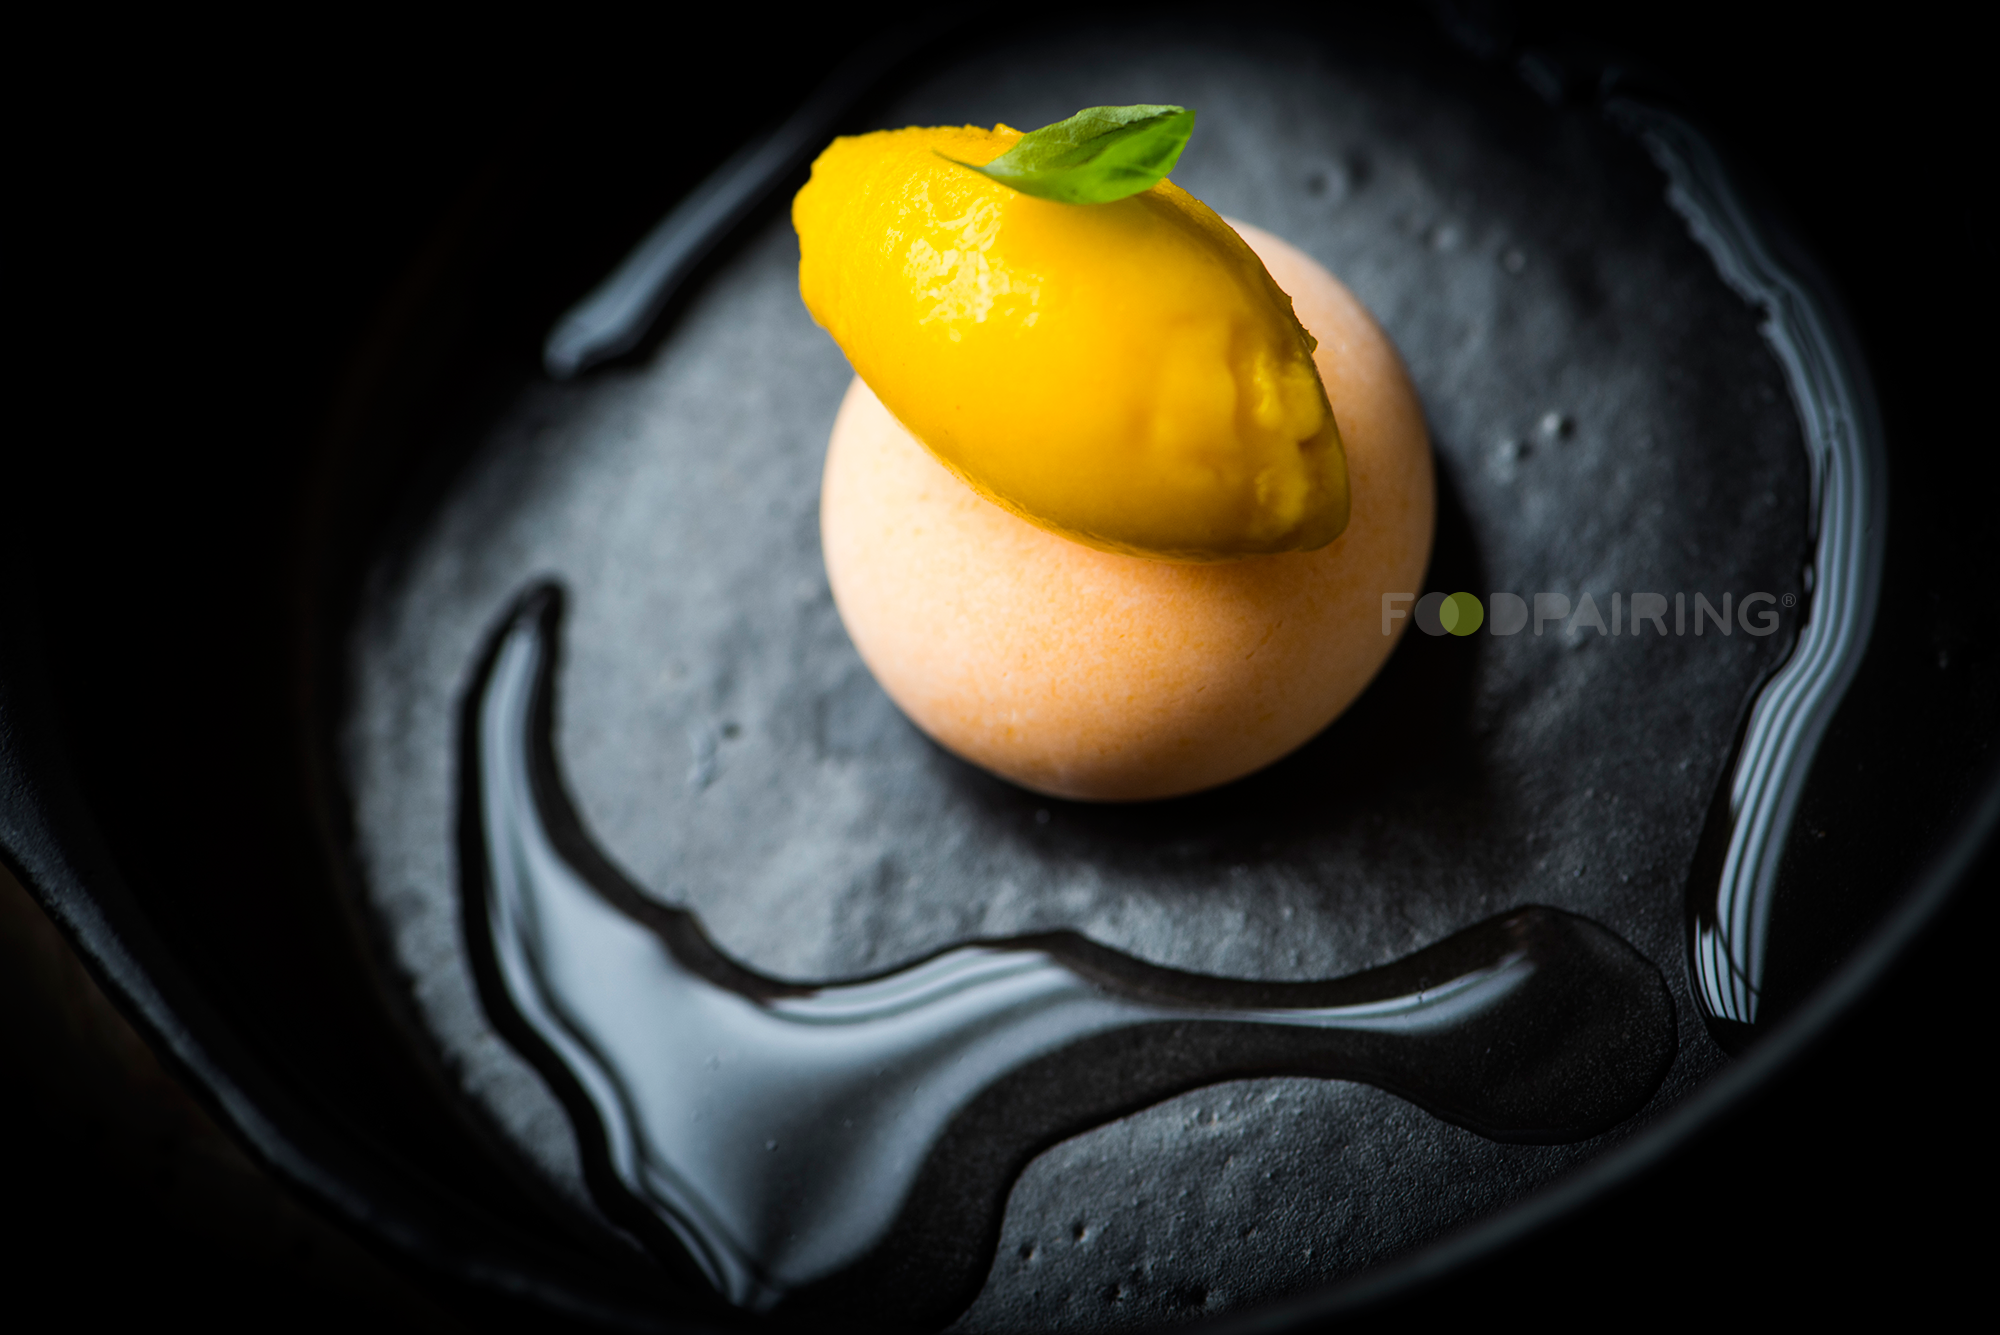 https://blog-assets.foodpairing.com/2017/08/Madras-Curry-Orange-Mango-Sorbet.png